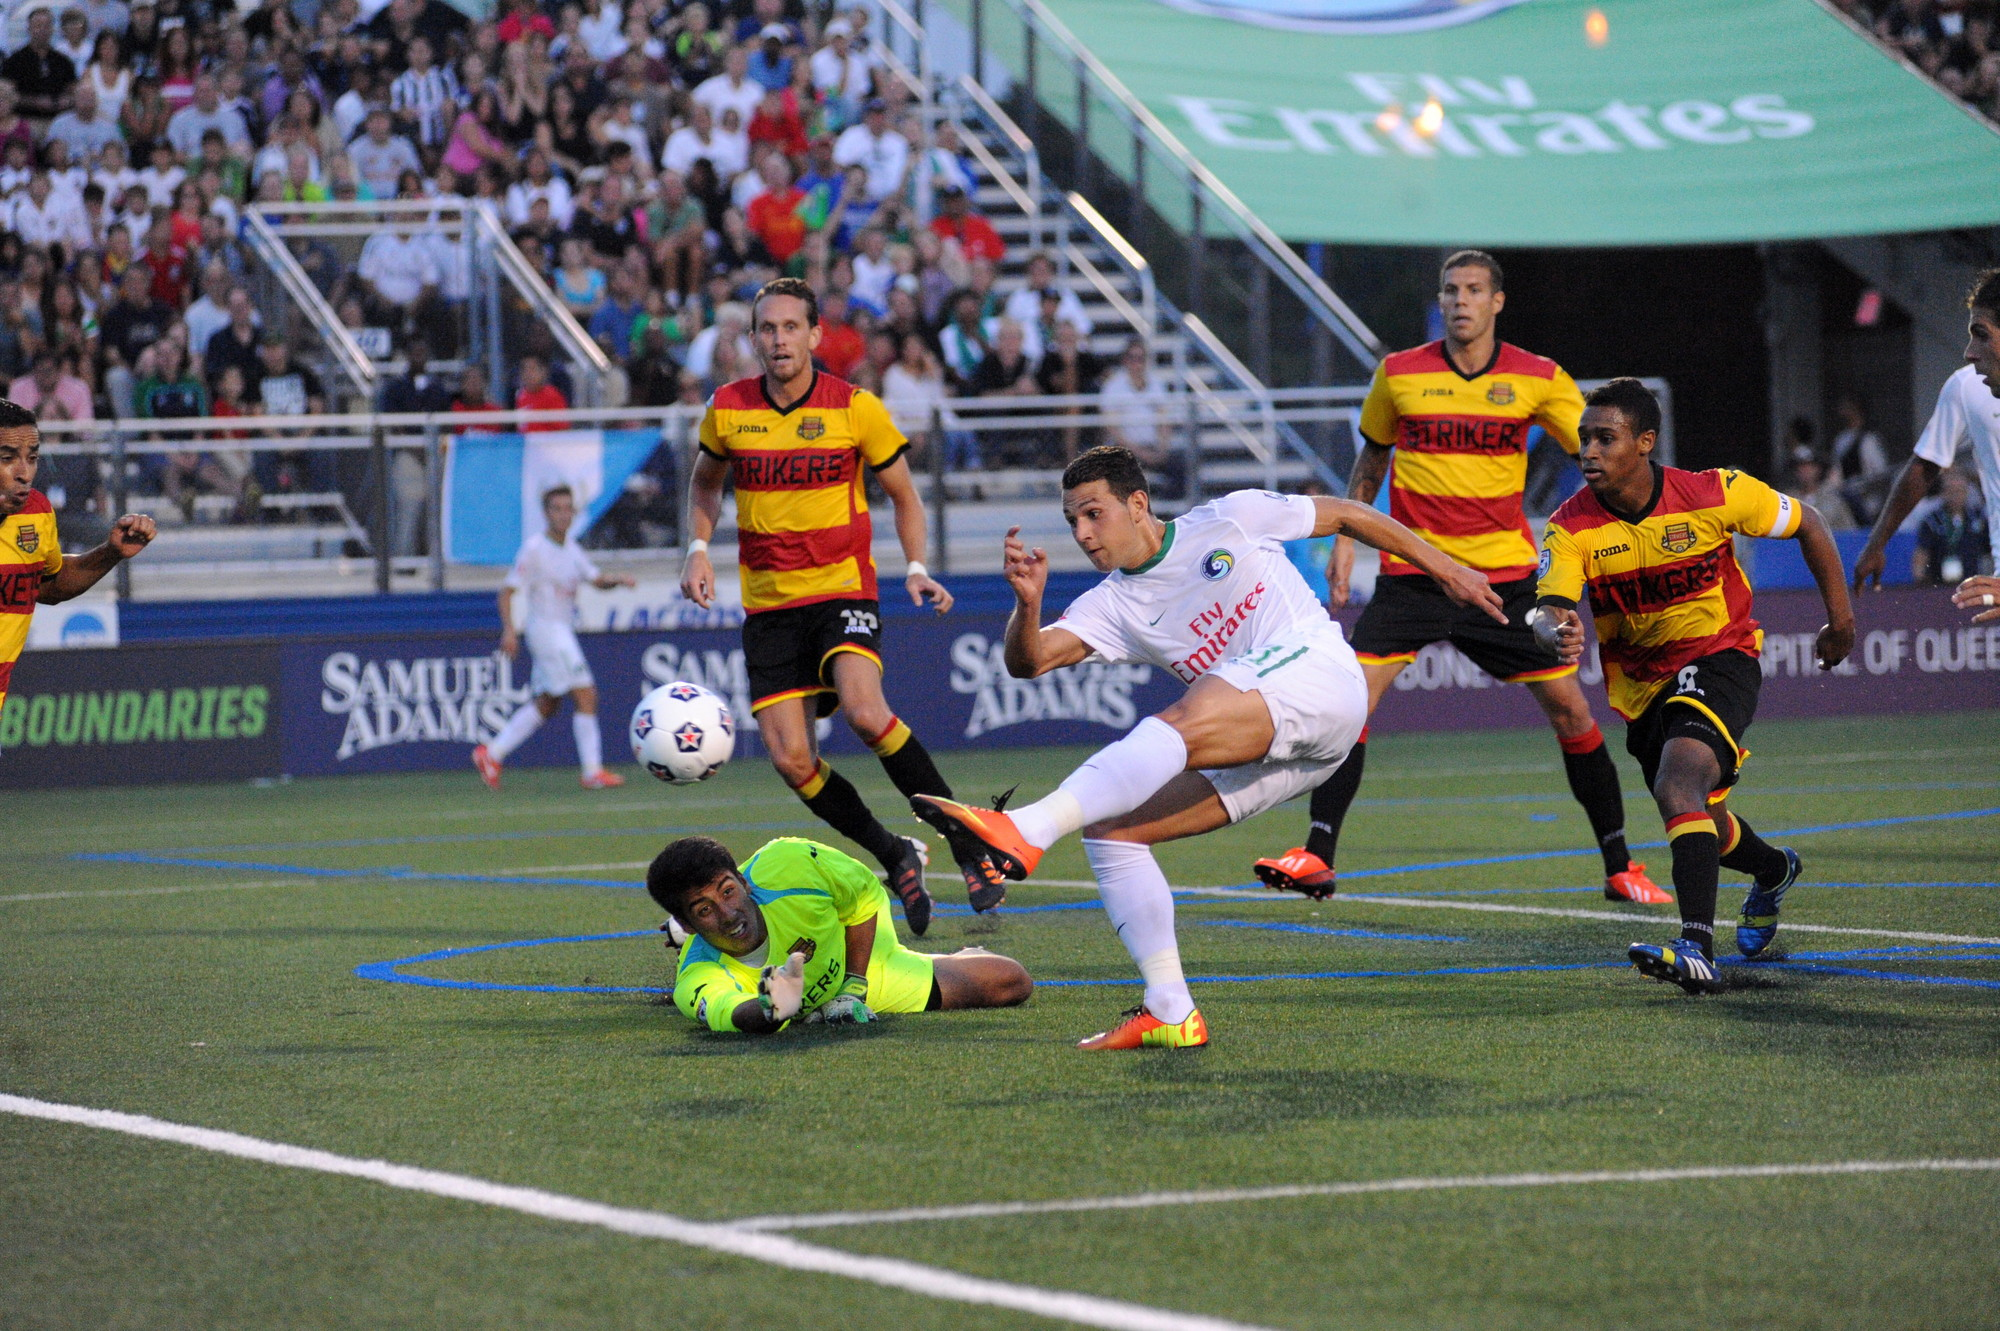 New York Cosmos forward Peri Maroševi scored the match's first goal in the 44th minute on the way to a 2-1 win over the Fort Lauderdale Strikers on Aug. 3.